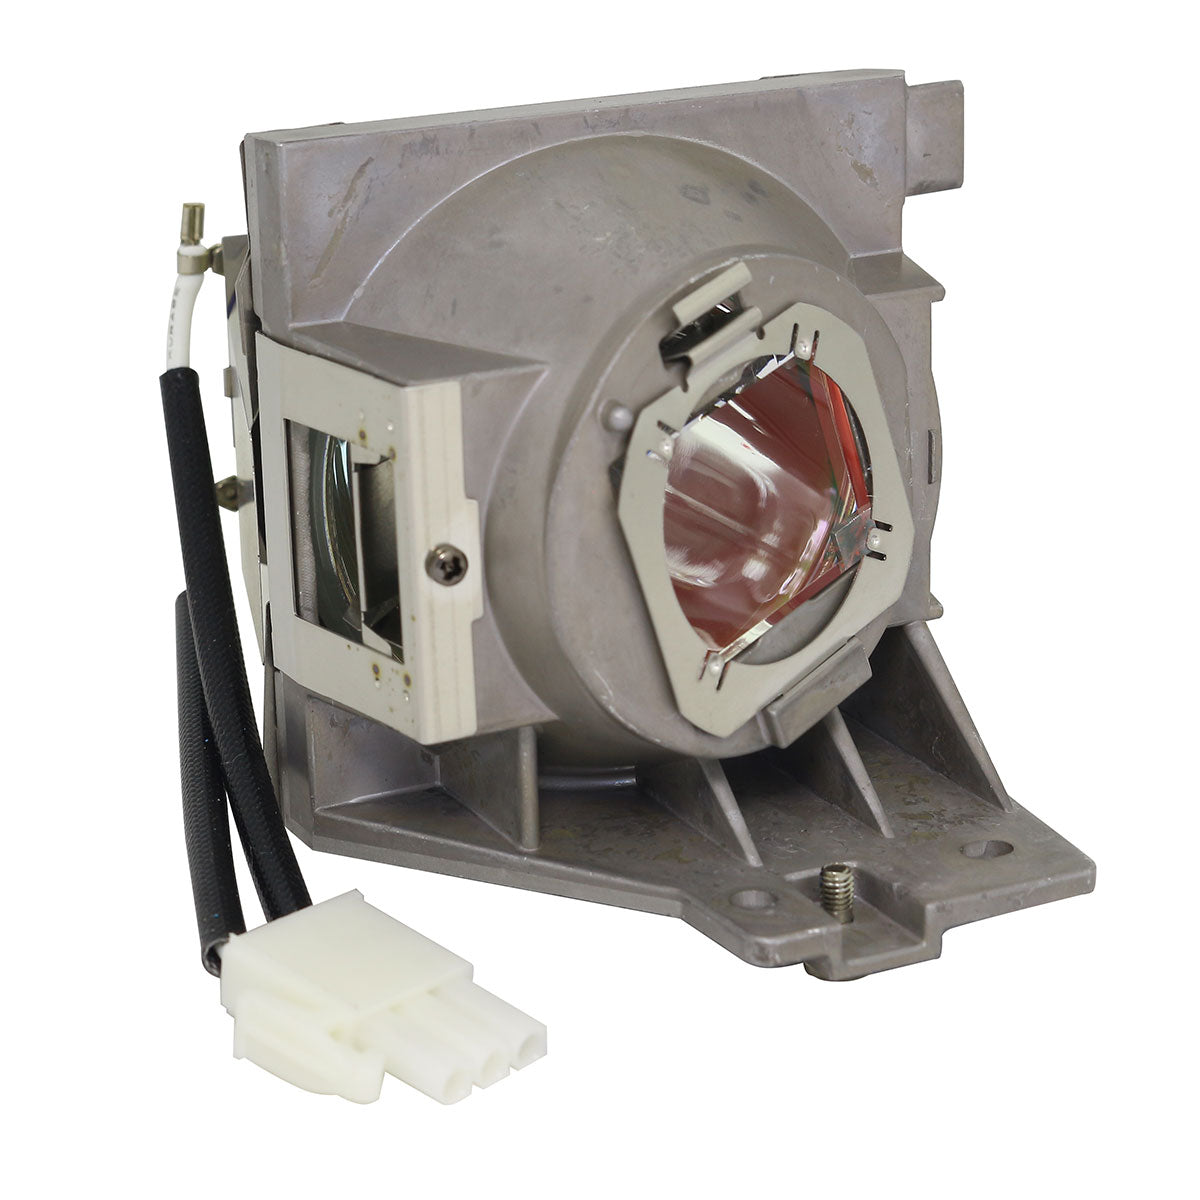 Viewsonic RLC-109 Philips Projector Lamp Module